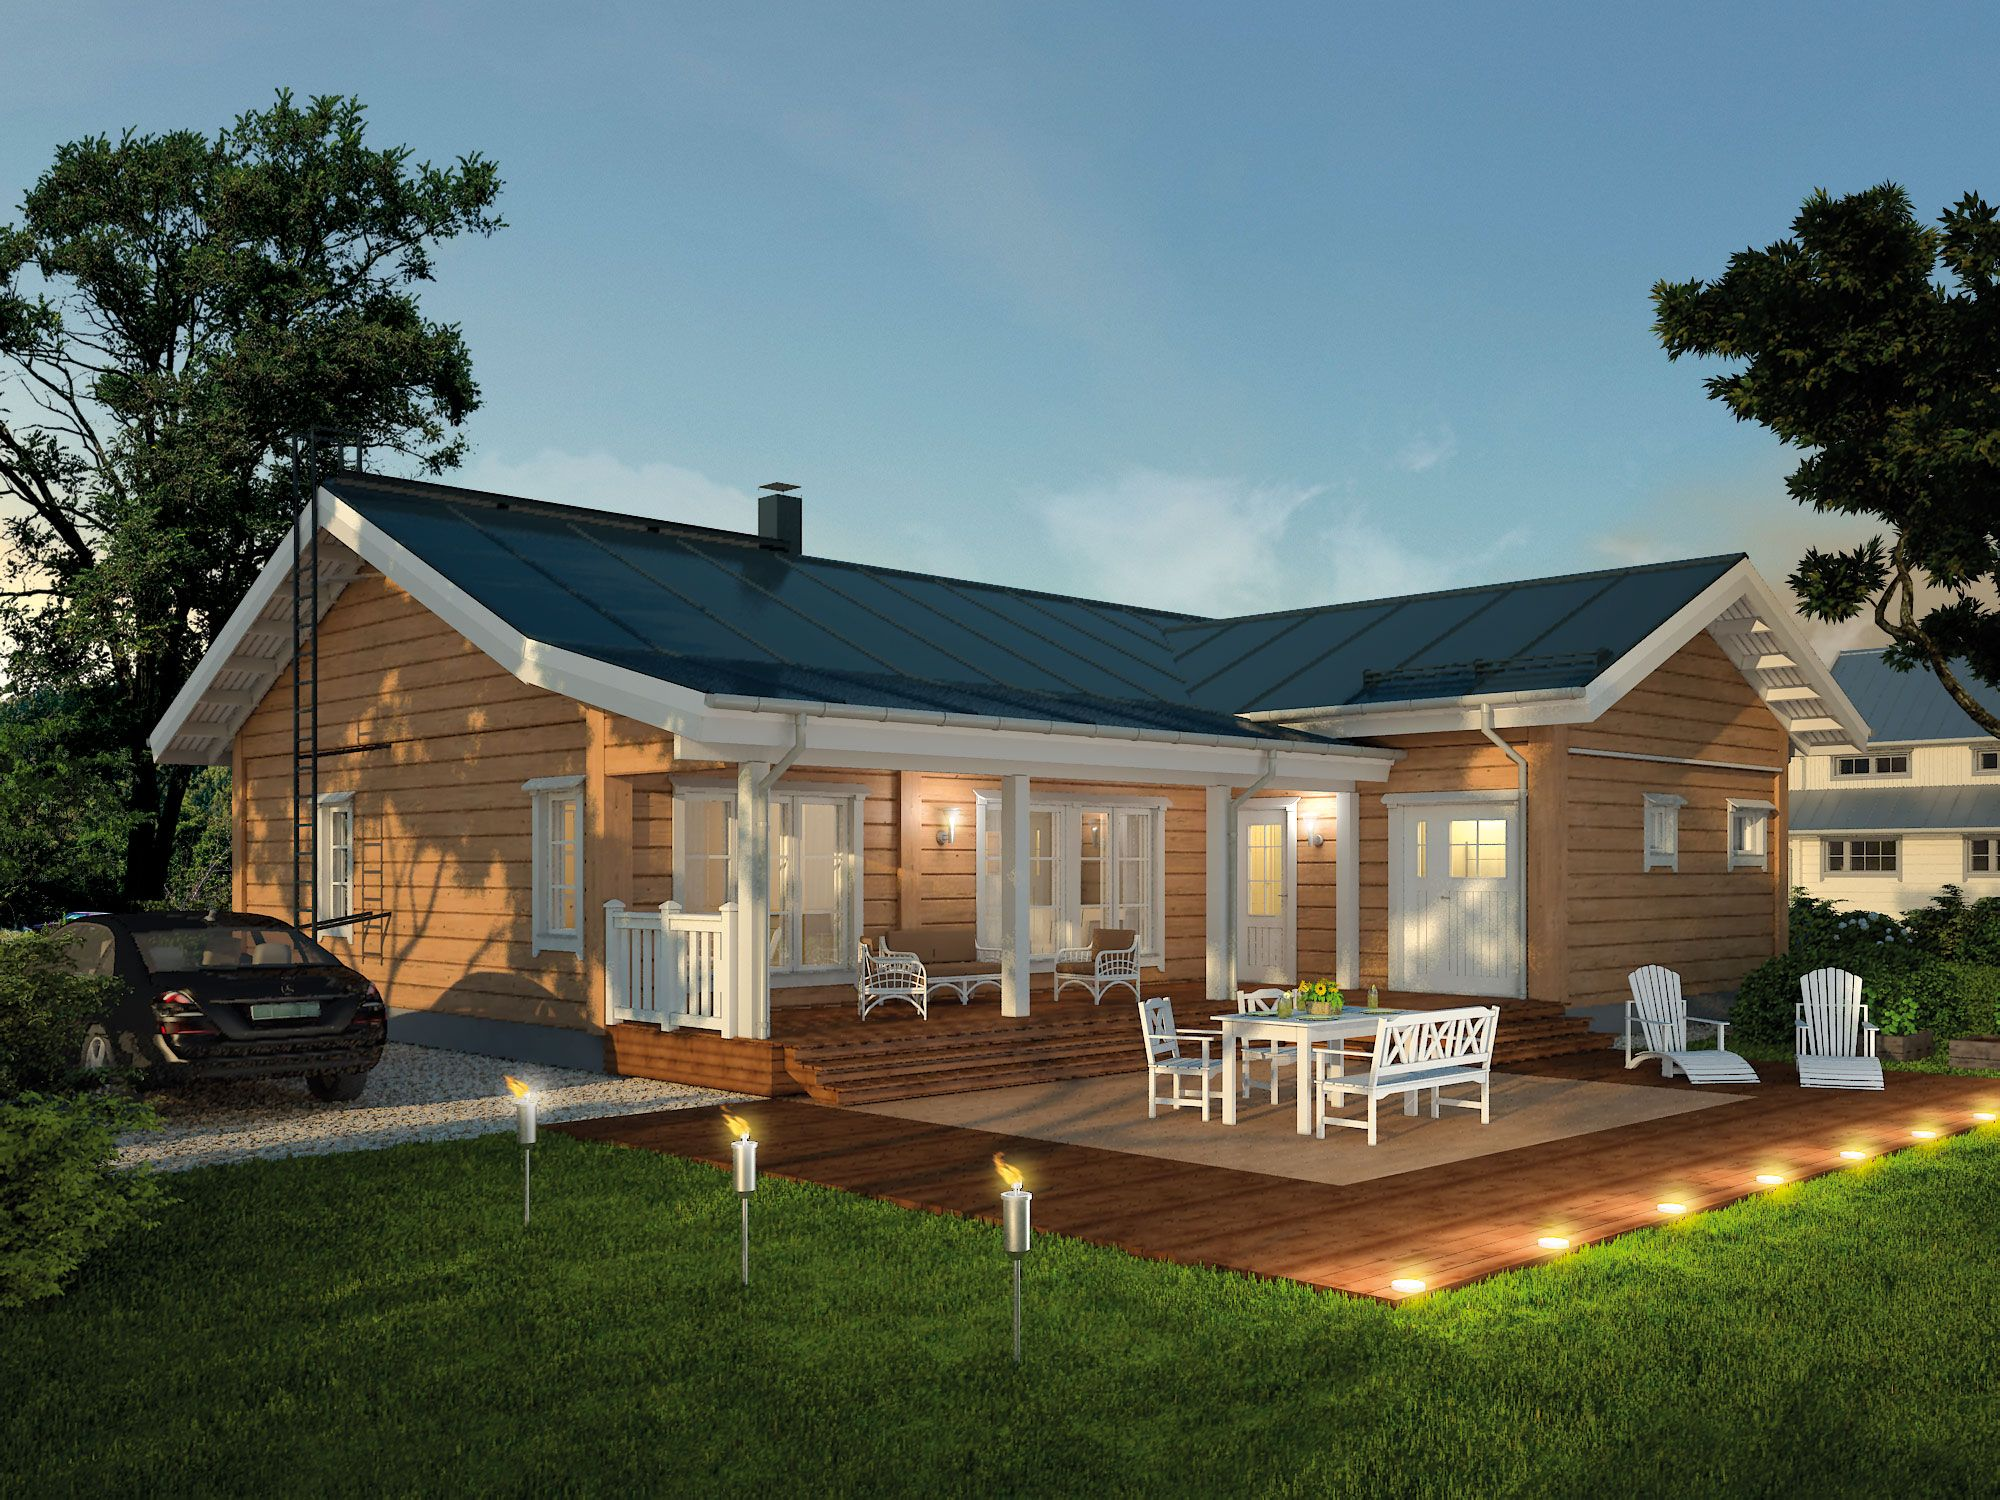 modular homes |  modular homes and manufactured homes, then